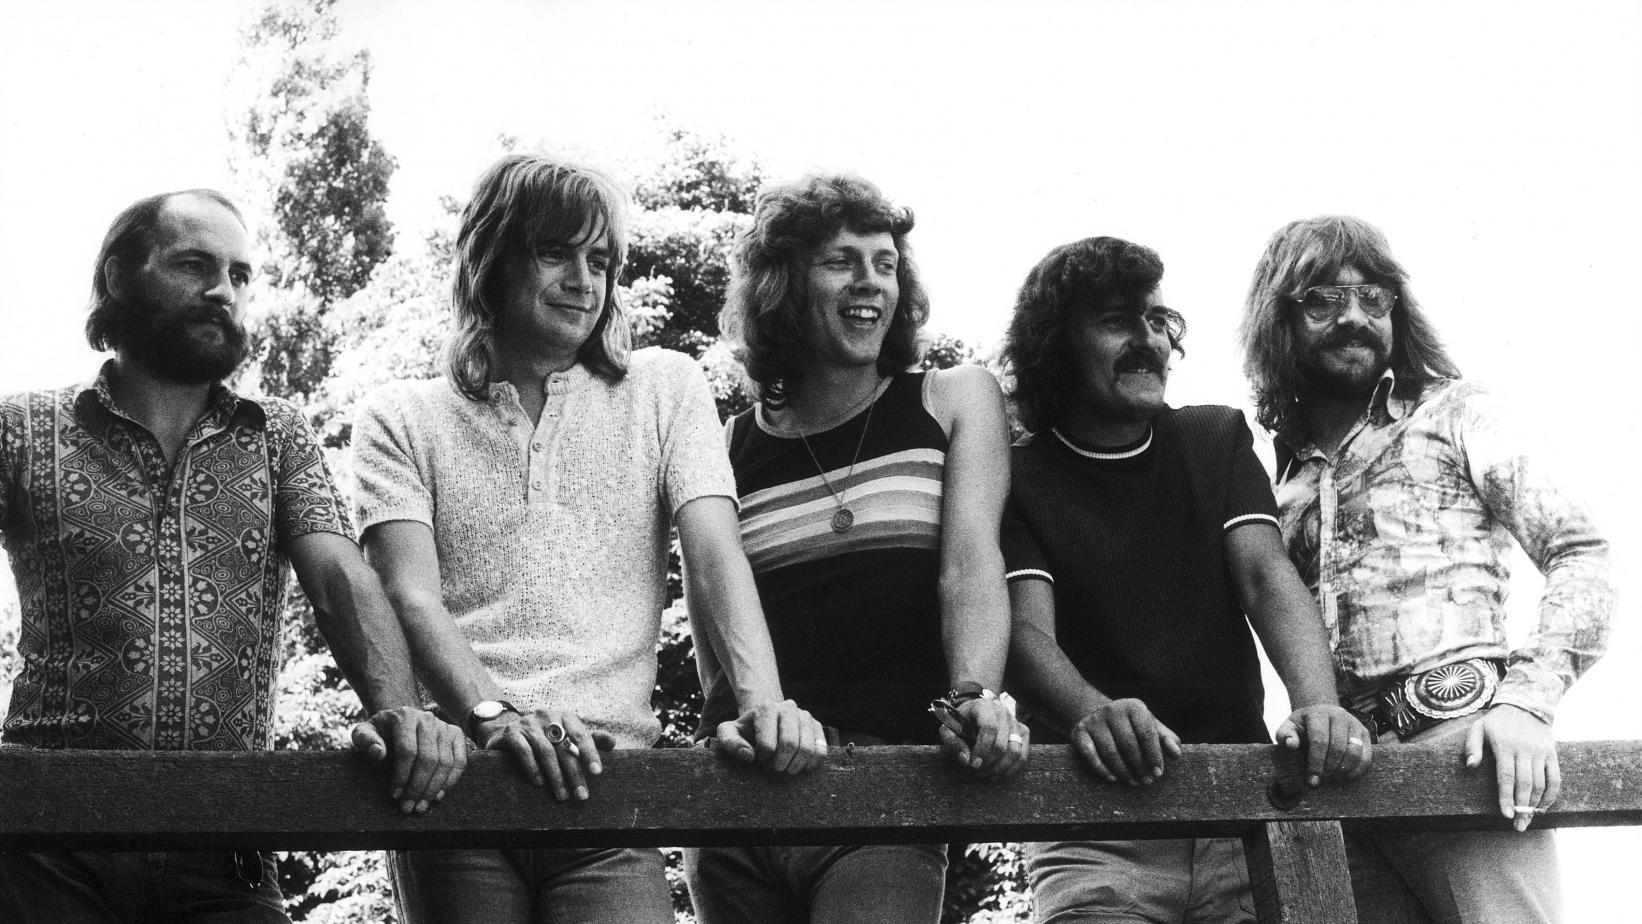 The Moody Blues' Mike Pinder, Justin Hayward, John Lodge, Ray Thomas, and Graeme Edge